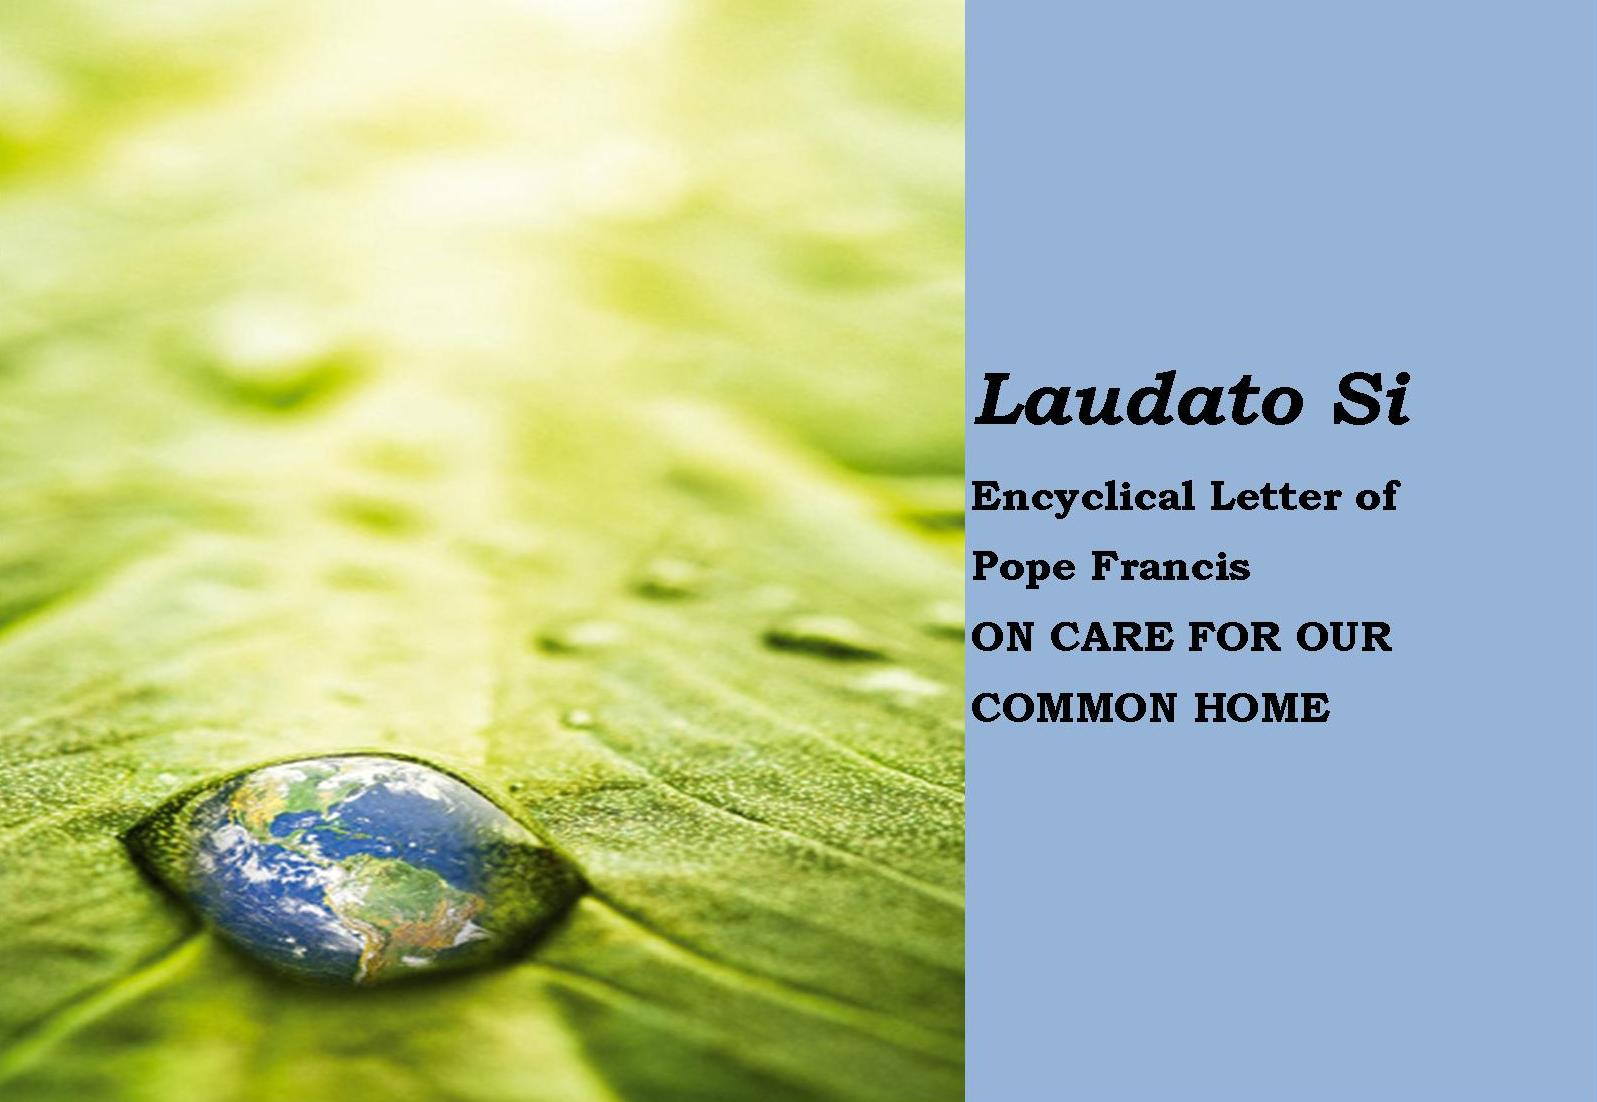 Web image for Laudato Si master